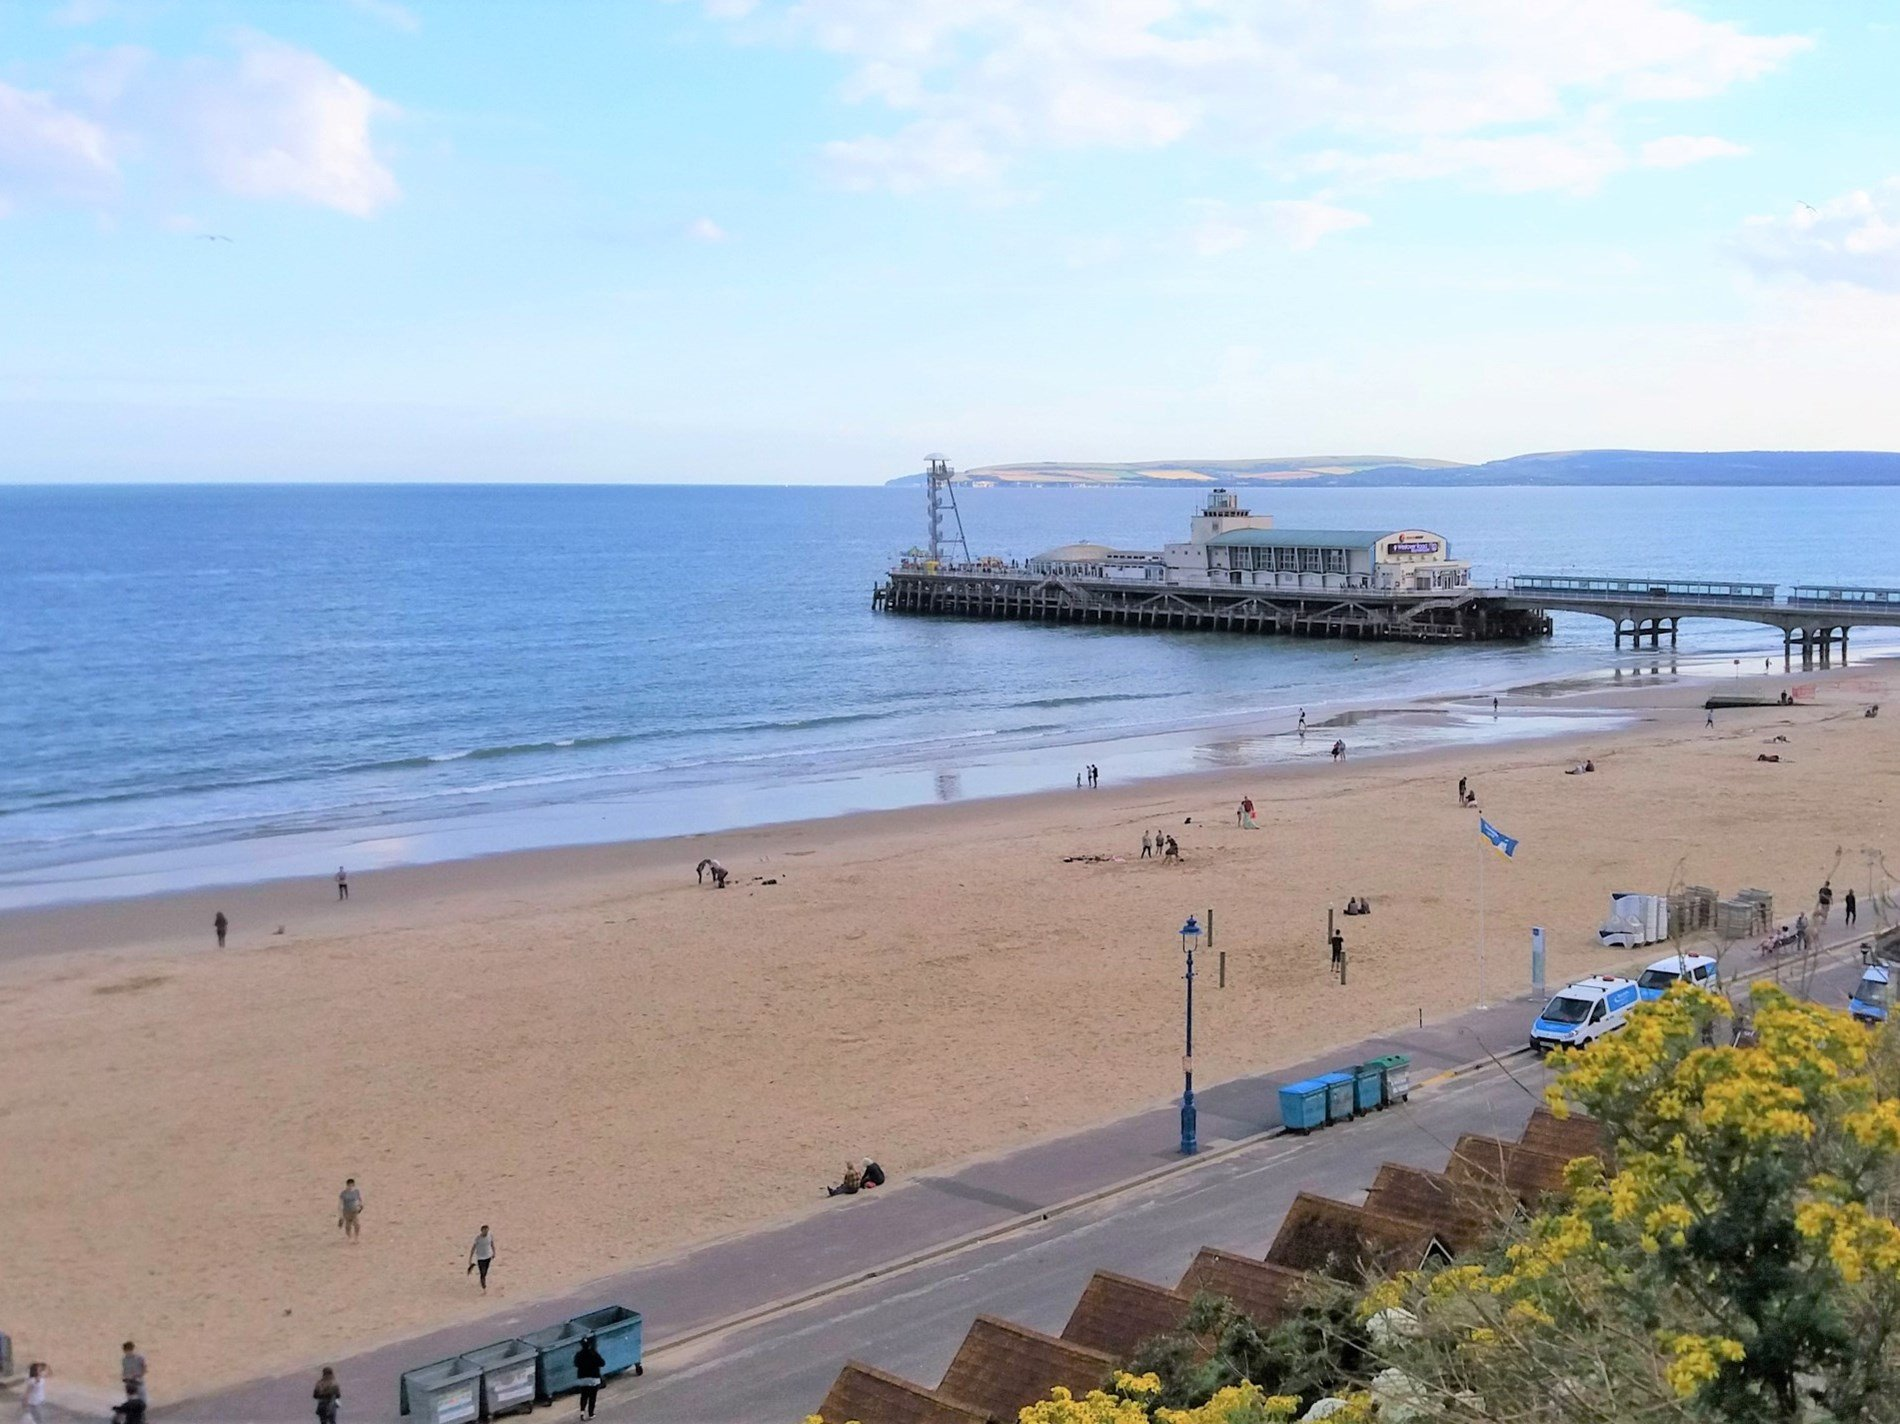 Bournemouth Pier which is within walking distance